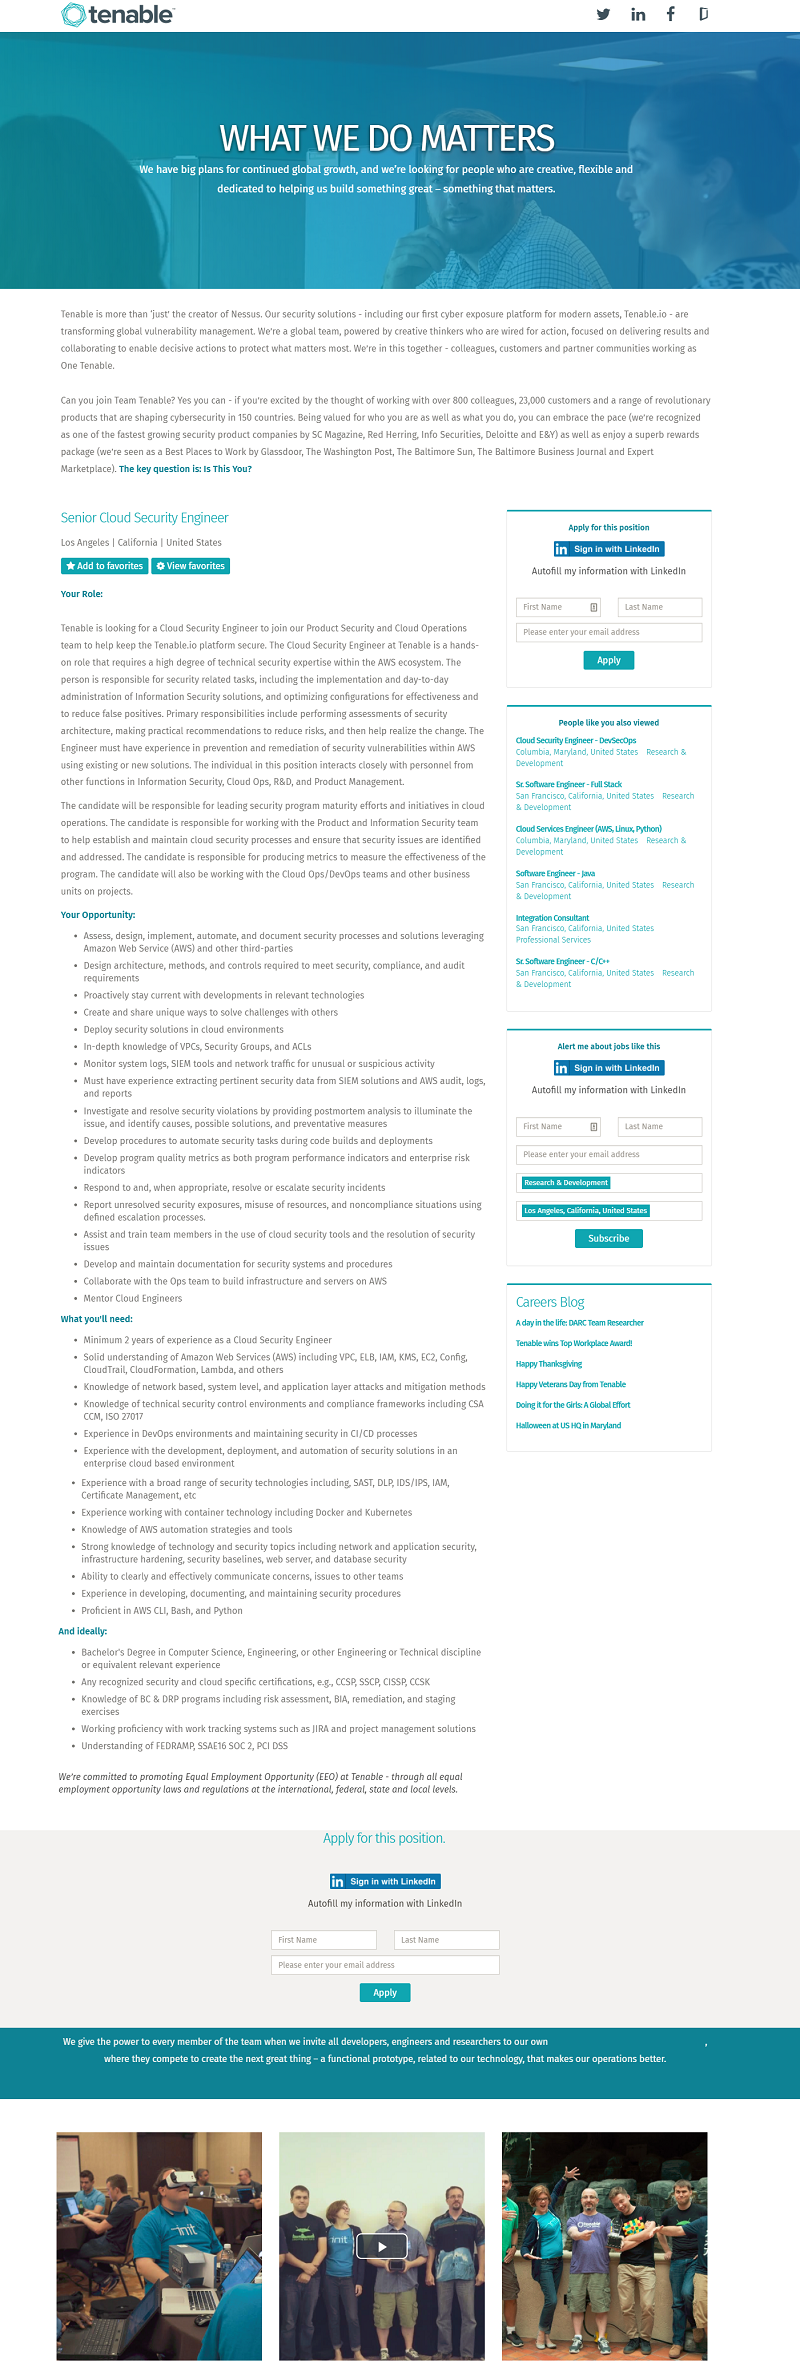 Tenable Mini Career Site Job Description